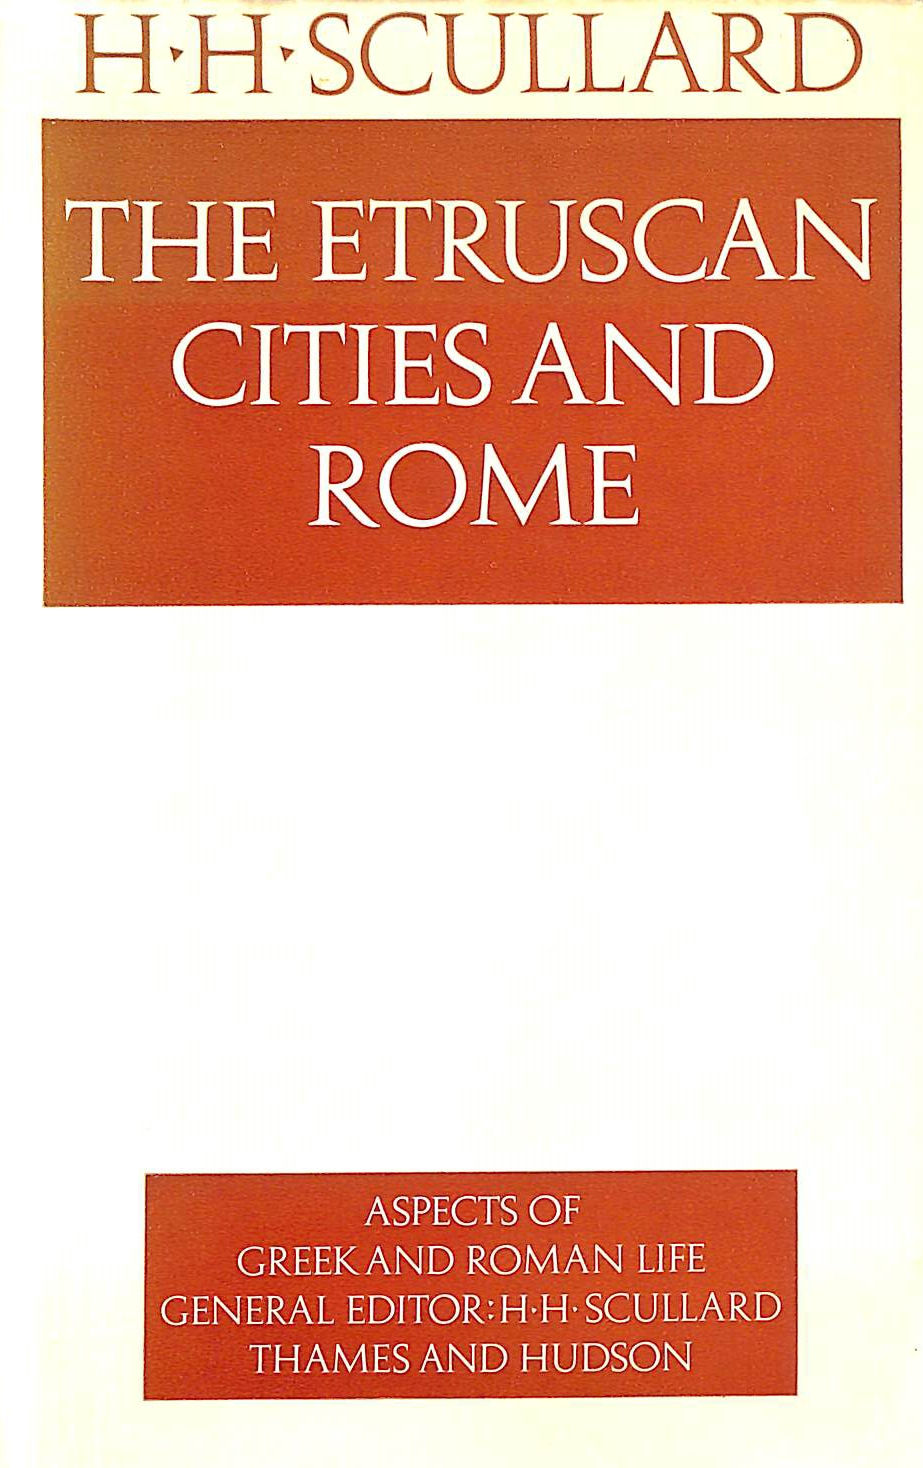 Image for The Etruscan Cities And Rome